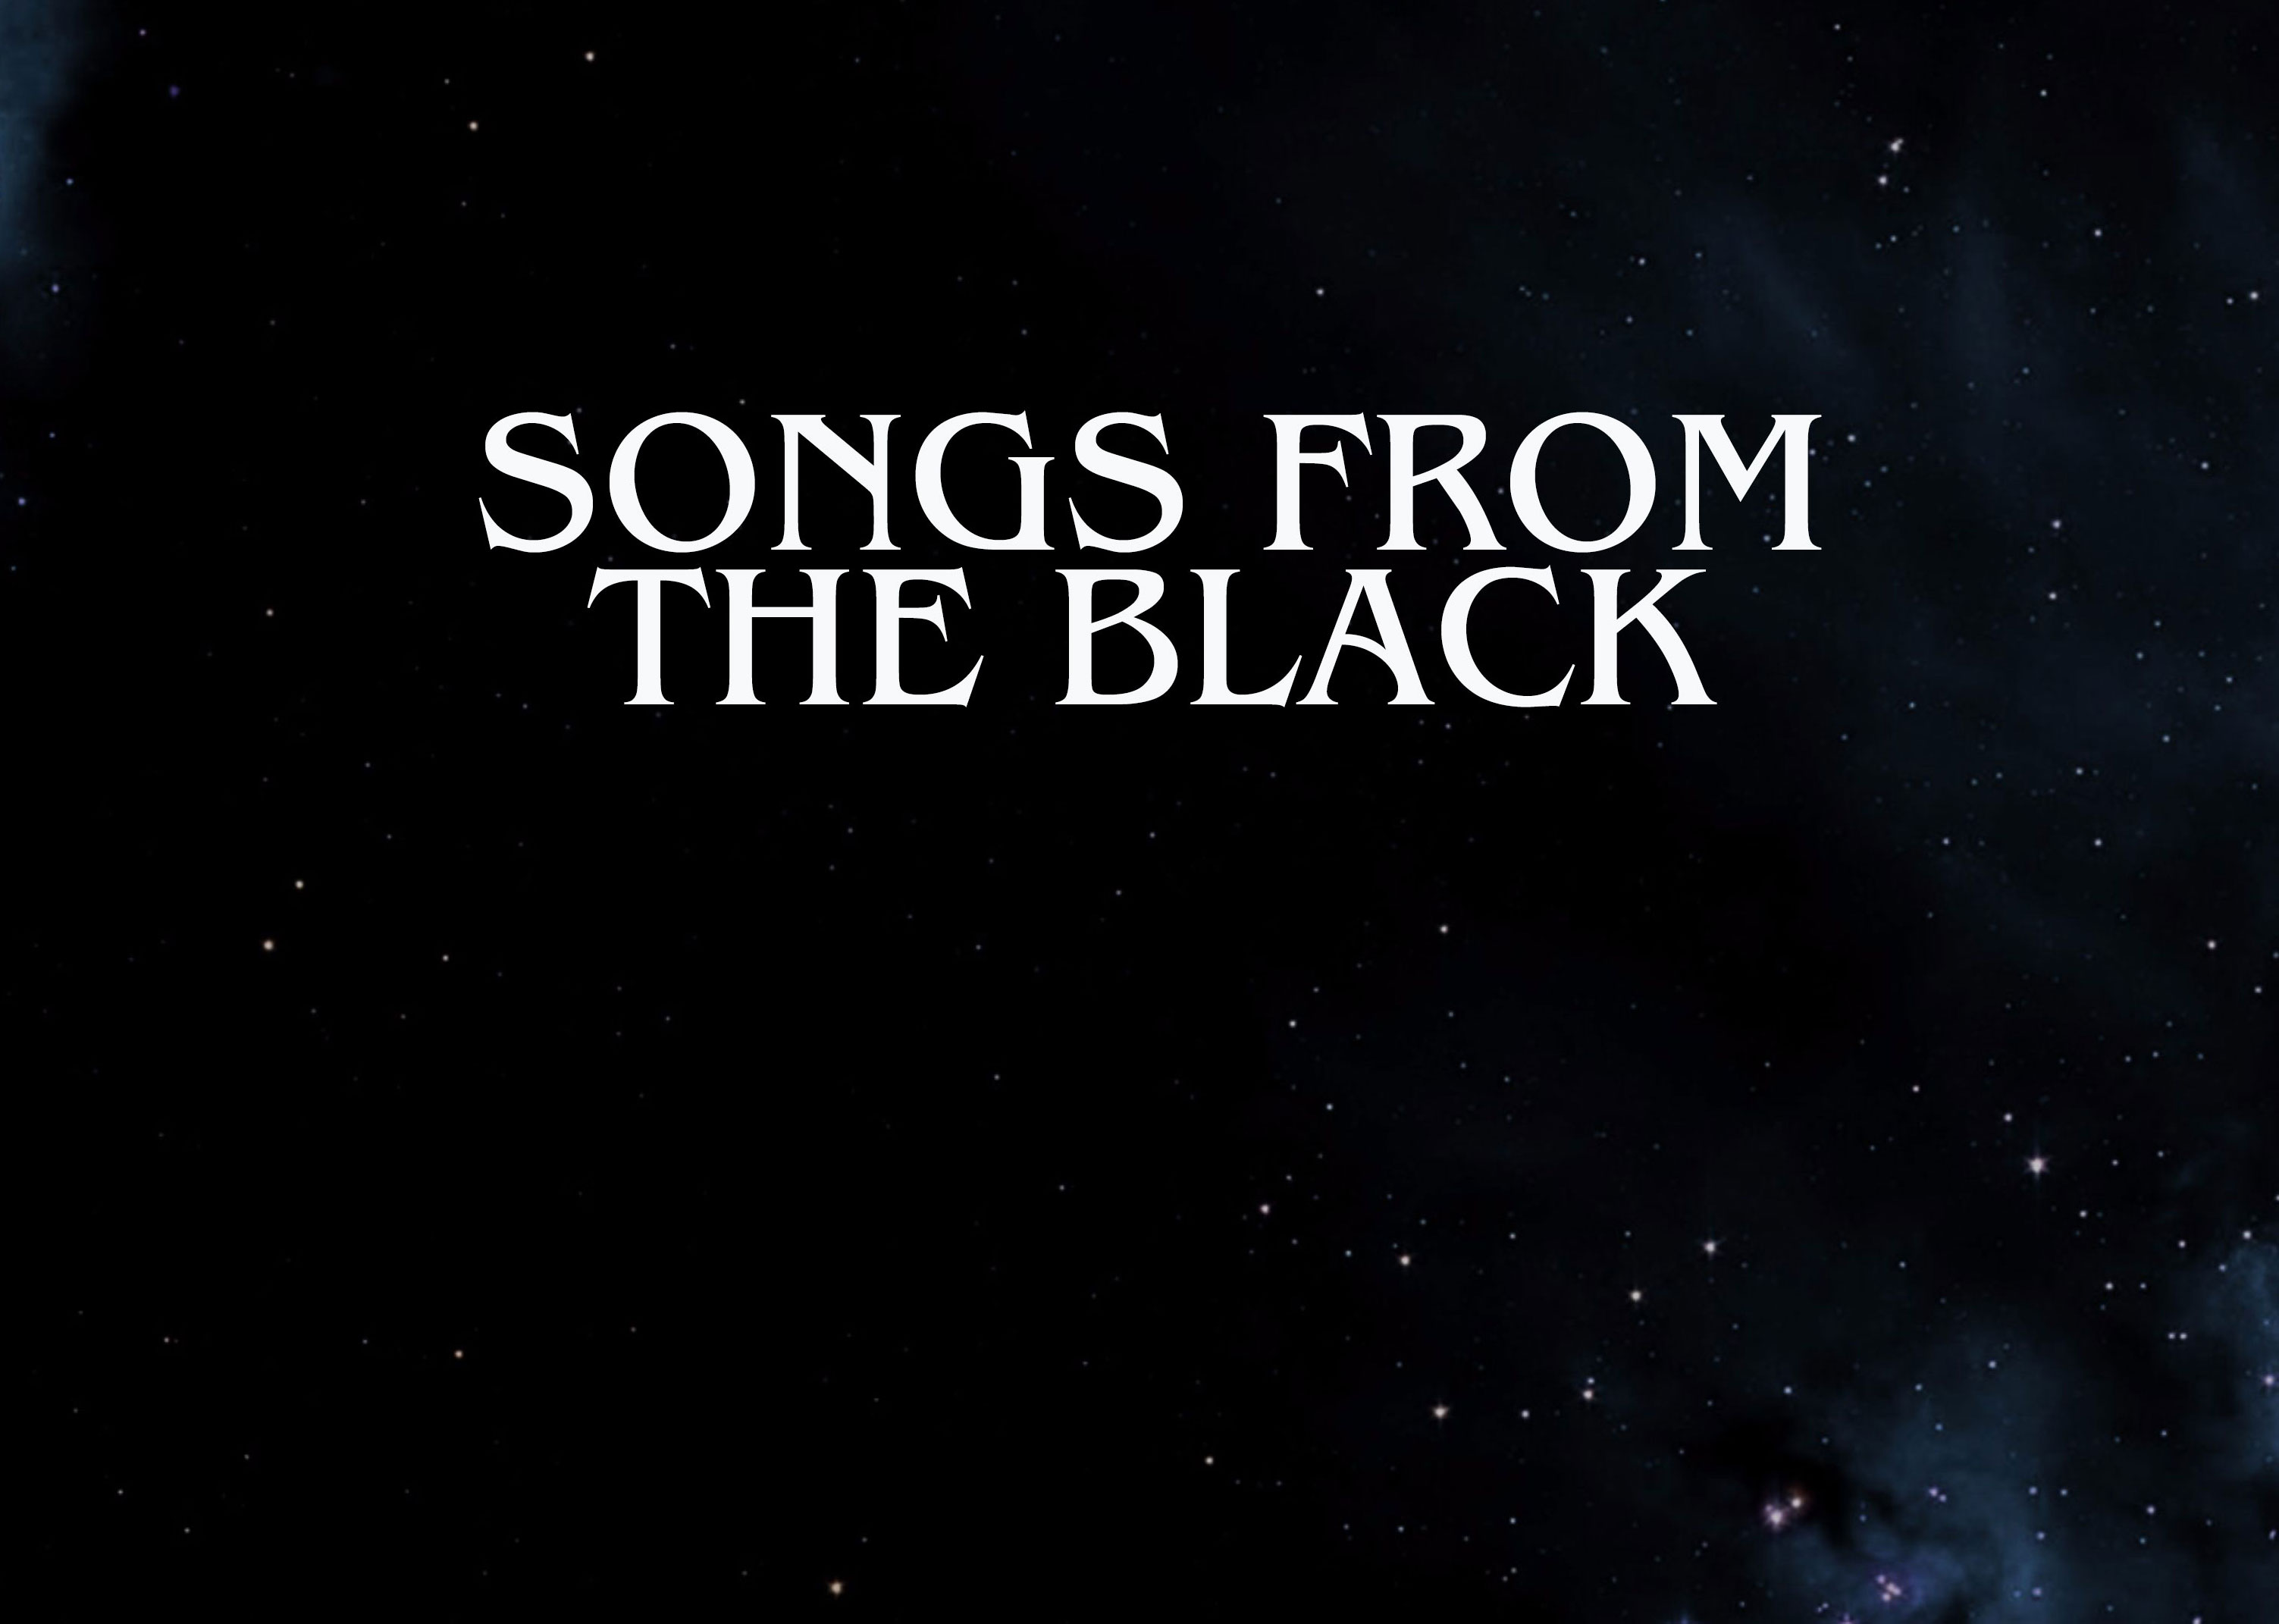 Songs from the Black